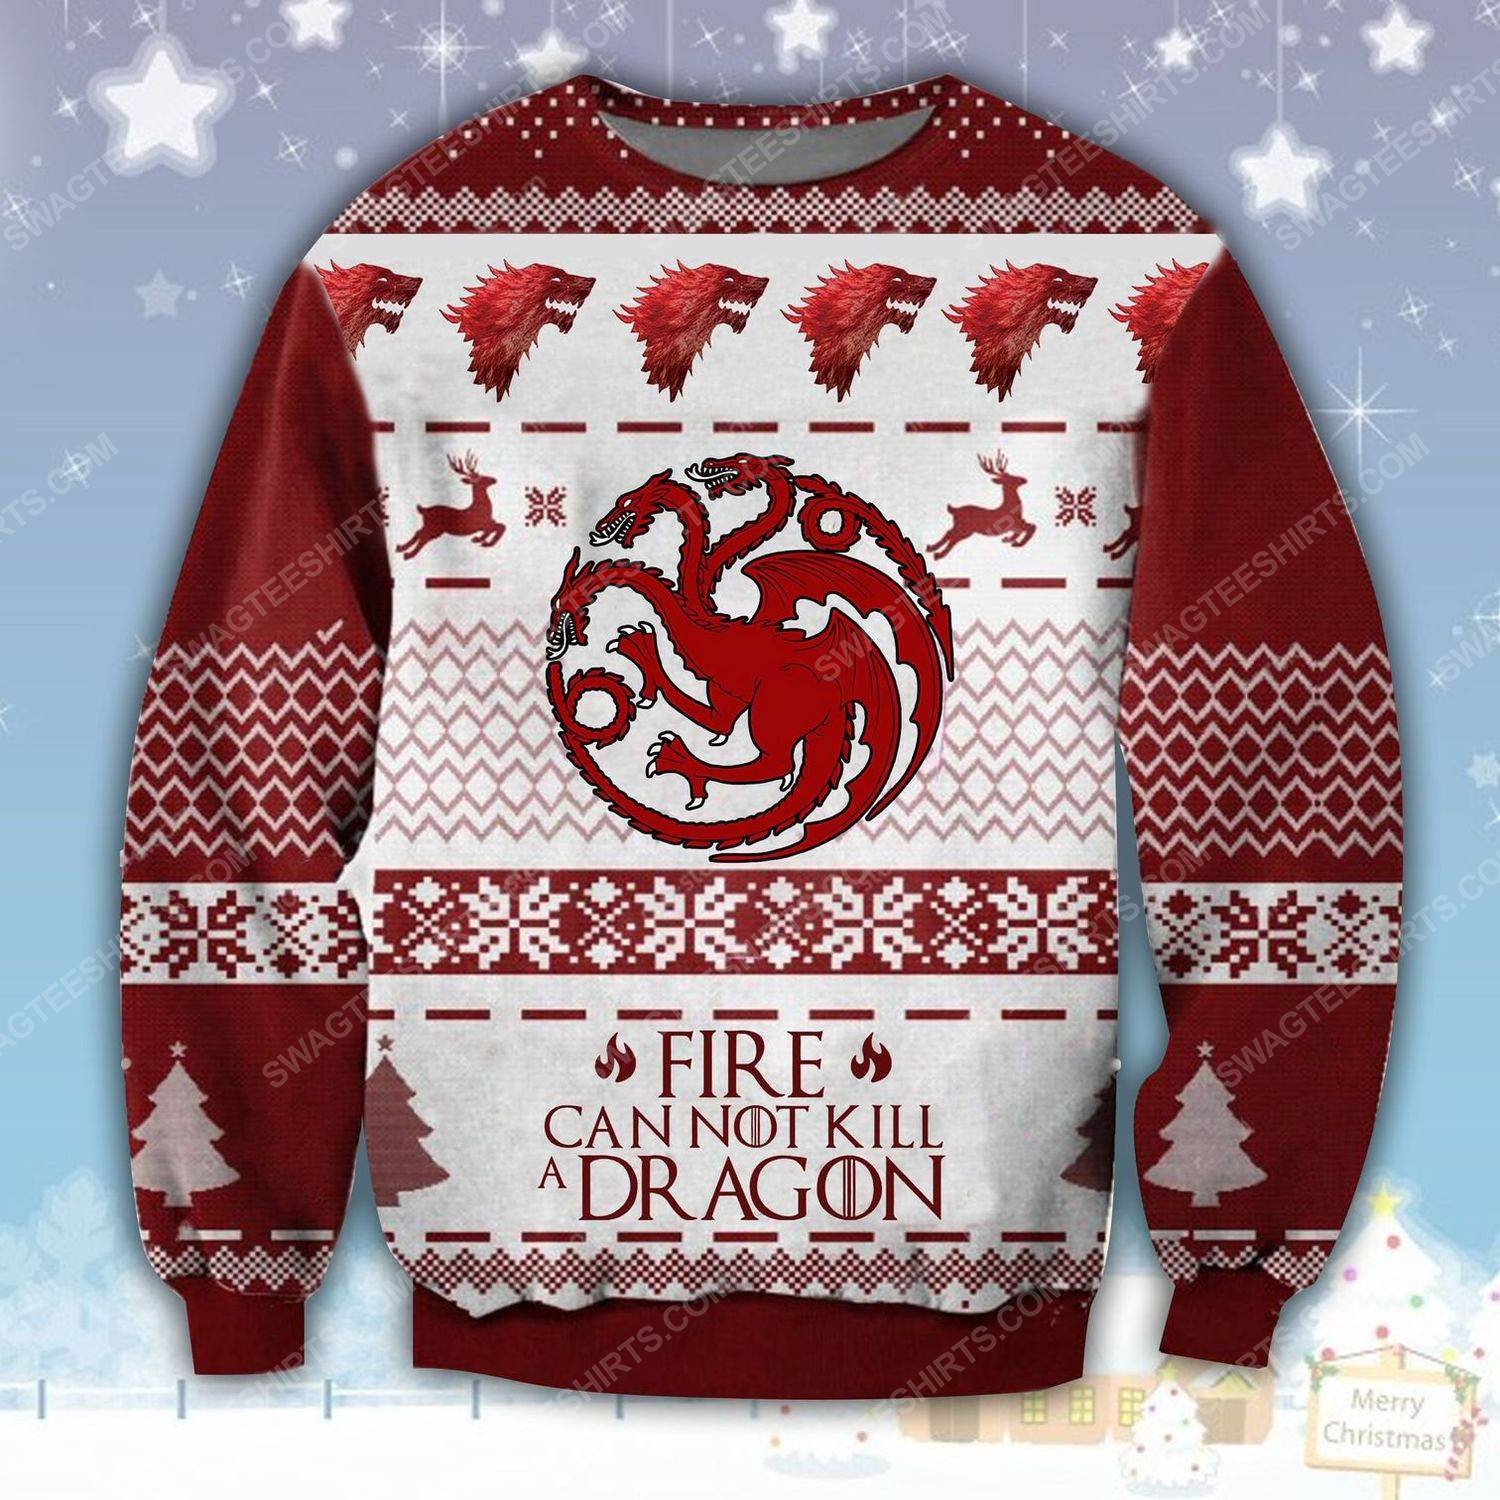 Game of thrones fire cannot kill a dragon ugly christmas sweater - Copy (2)